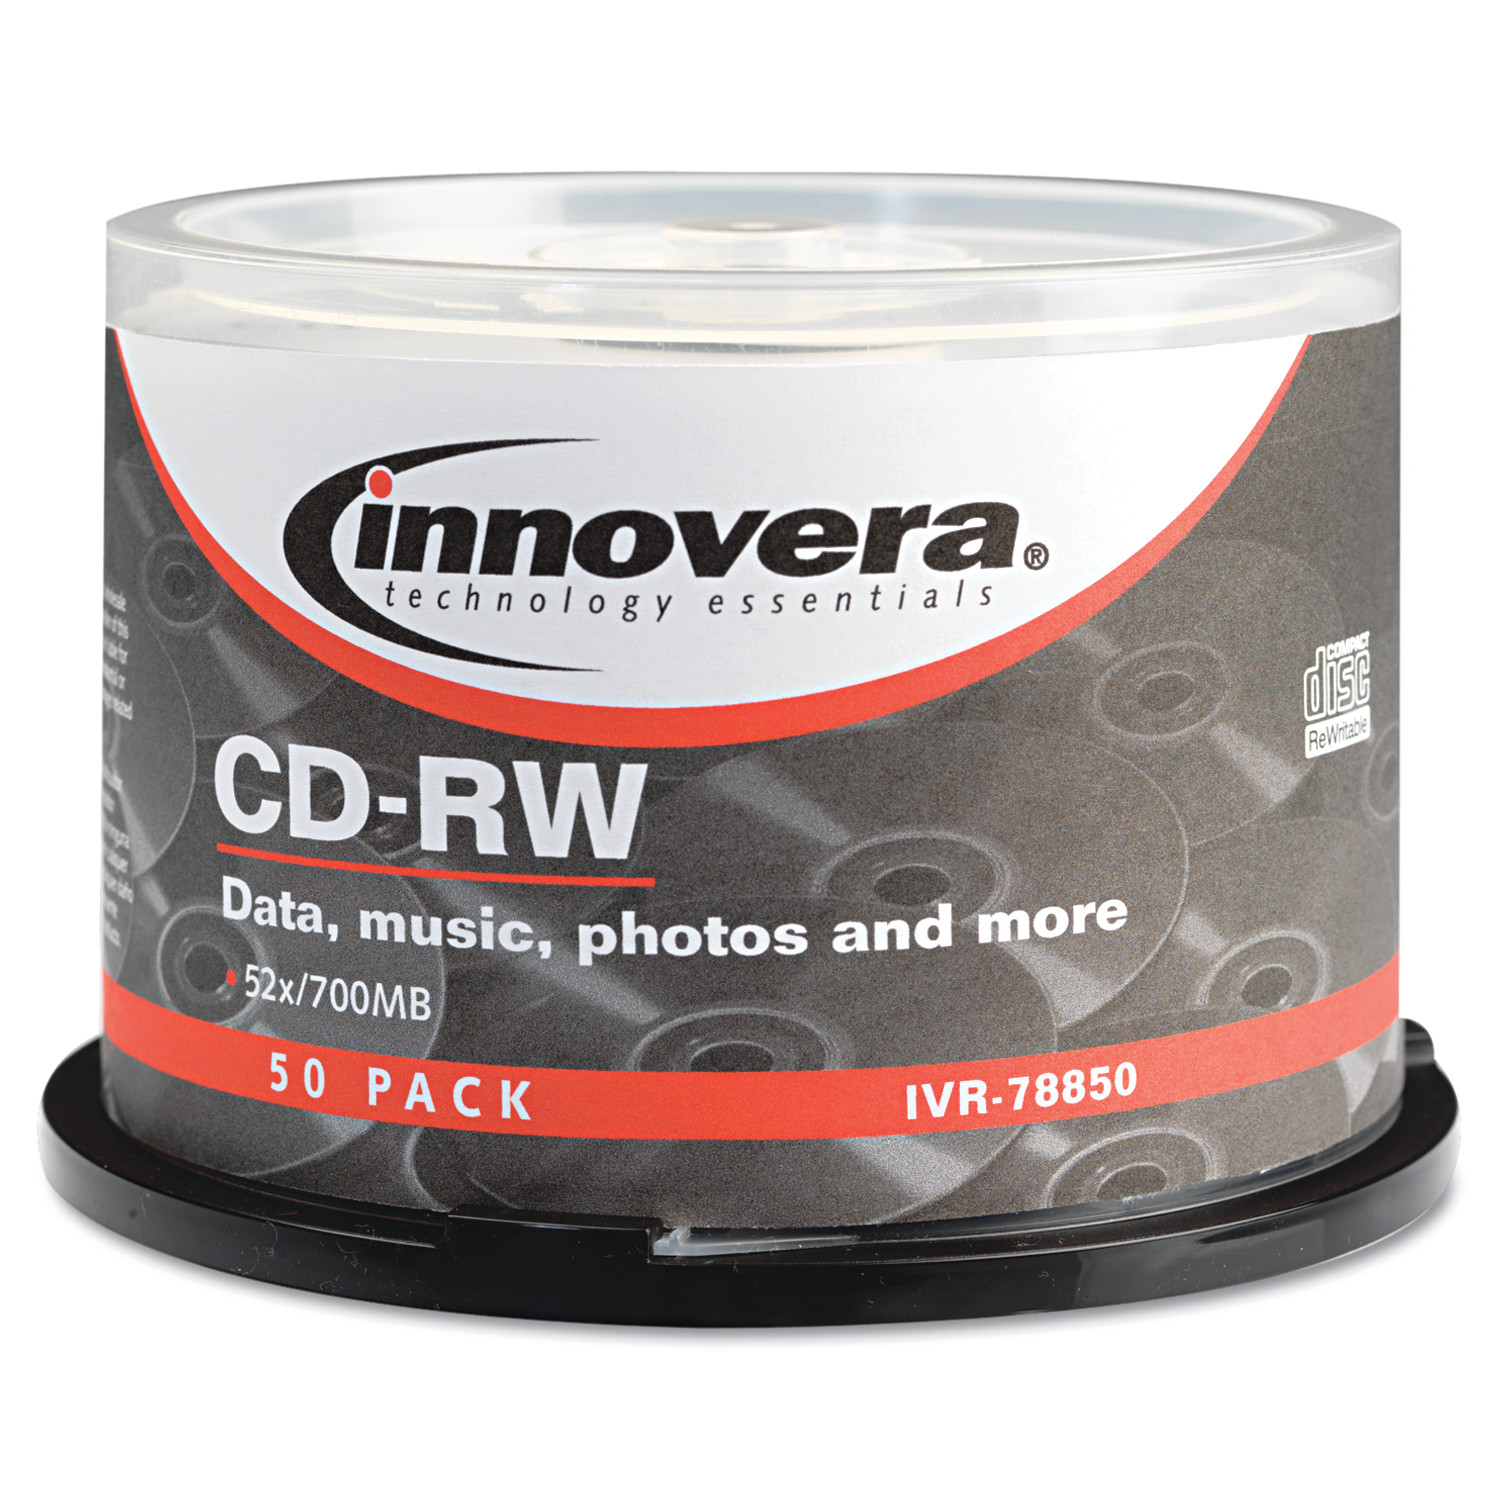 Innovera CD-RW Discs, Rewritable, 700MB/80min, 12x, Spindle, Silver, 50/Pack -IVR78850